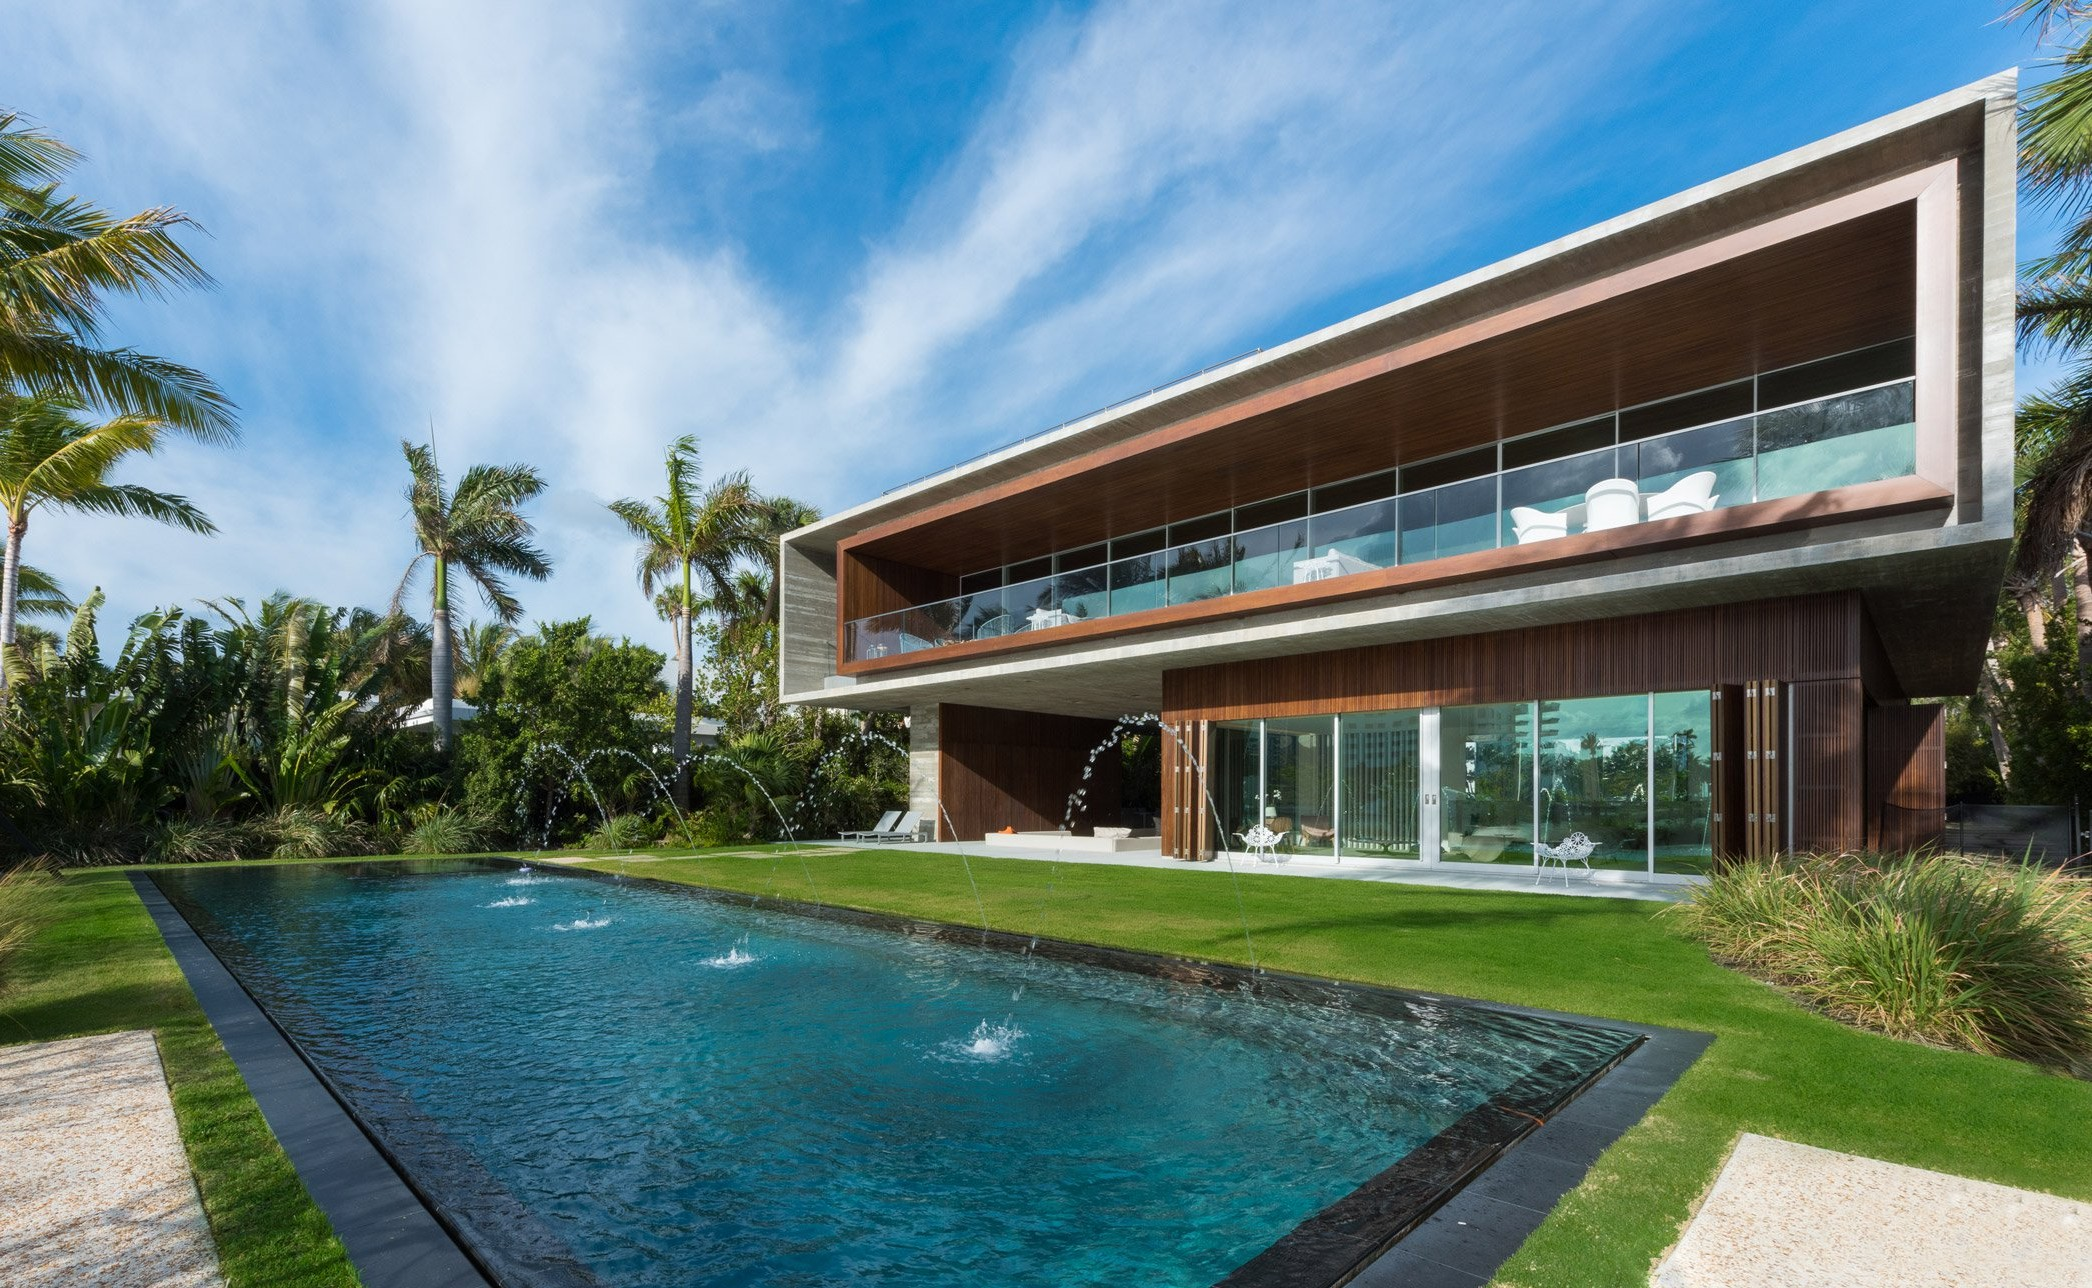 home-swimmable-lagoon-studio-mk-27-architecture-residential-miami-florida-usa_dezeen_2364_col_2